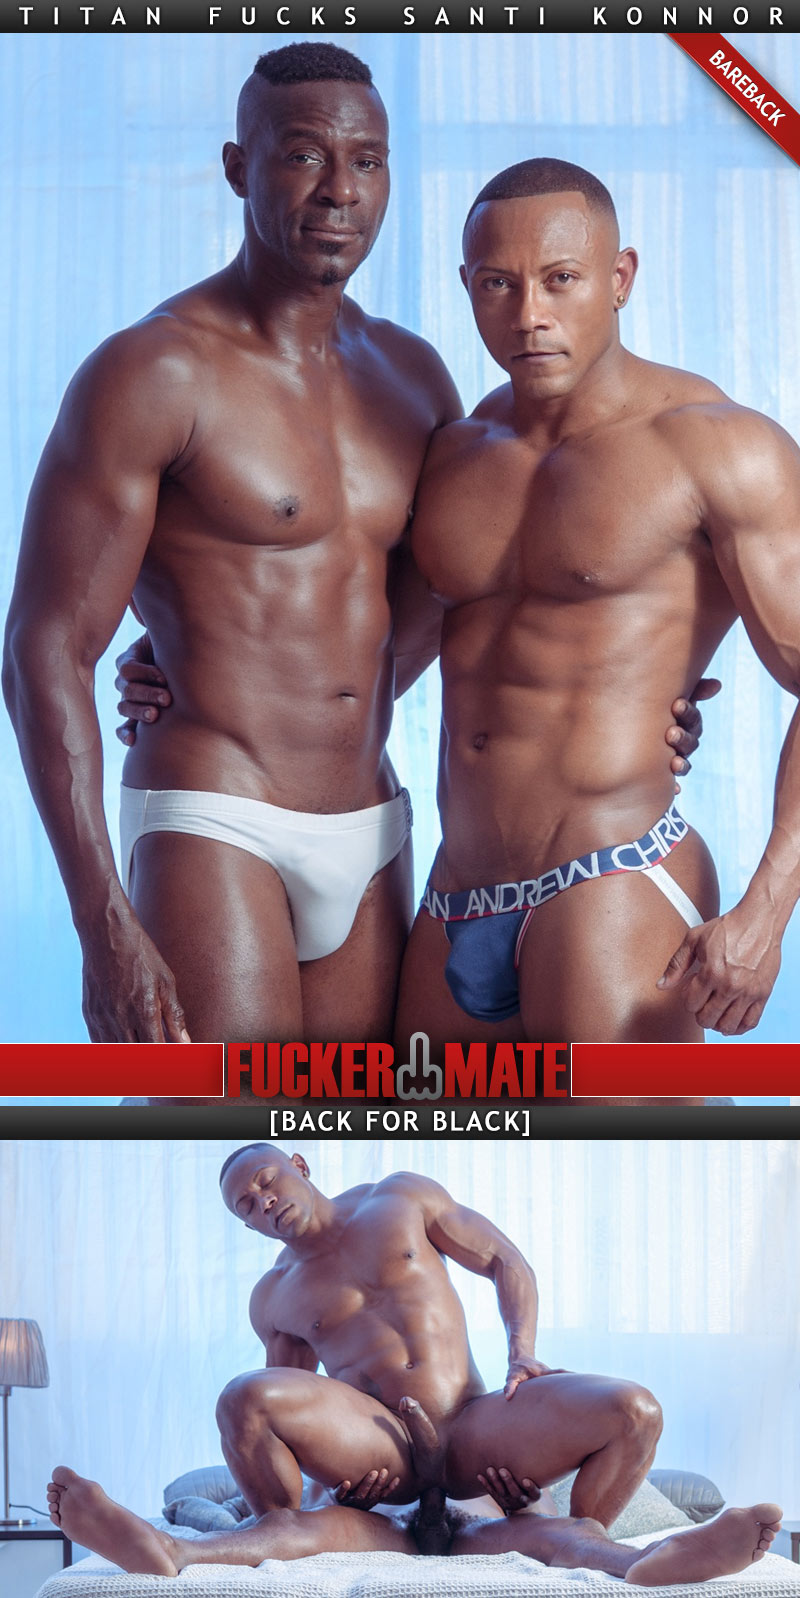 Back To Black (Titan and Santi Konnor) (Bareback) at Fuckermate